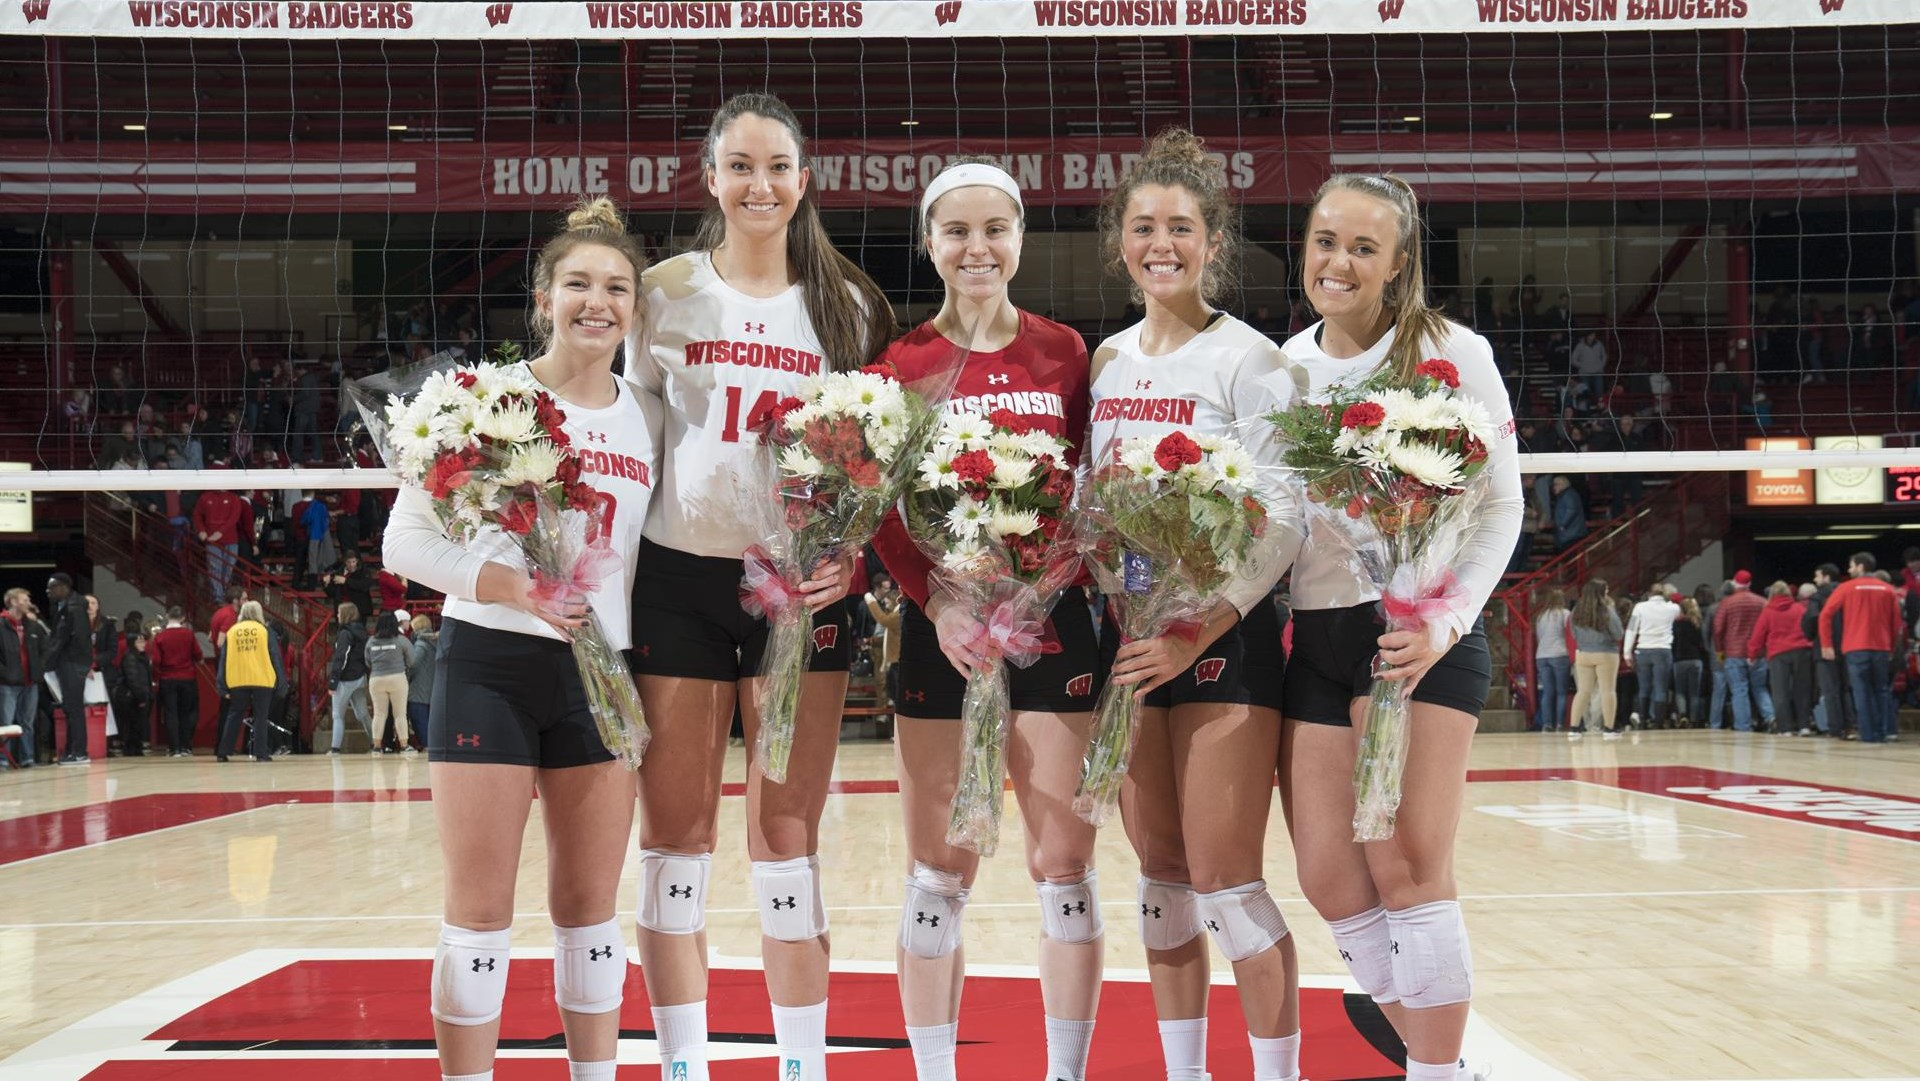 Congratulations To The 2020 Senior Class Wisconsin Badgers